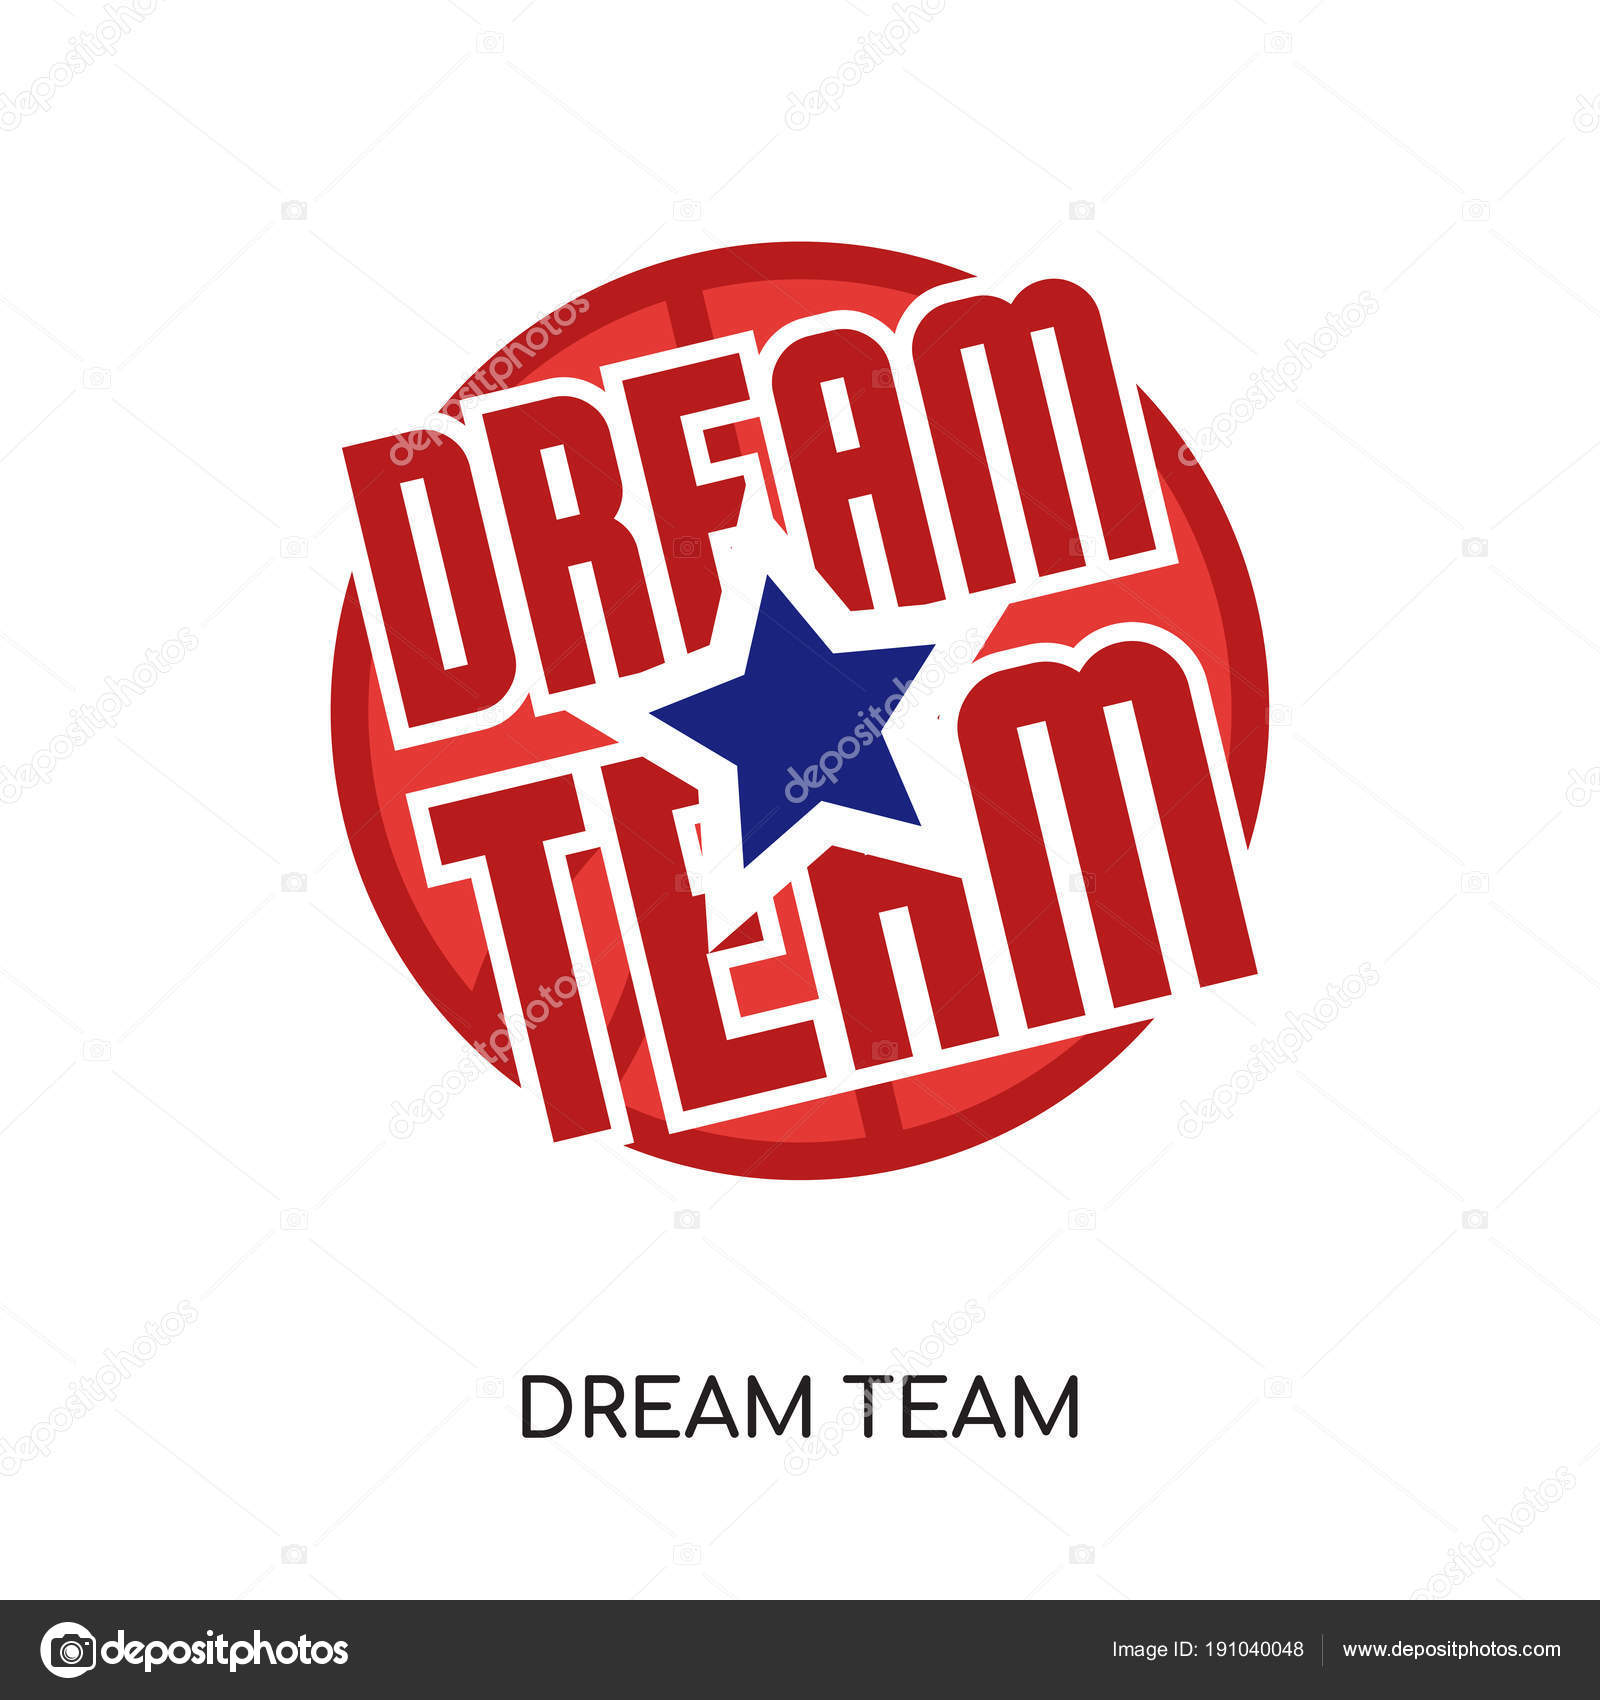 dream team logo isolated on white background for your web mobil rh depositphotos com dream team logo 512x512 dream team login